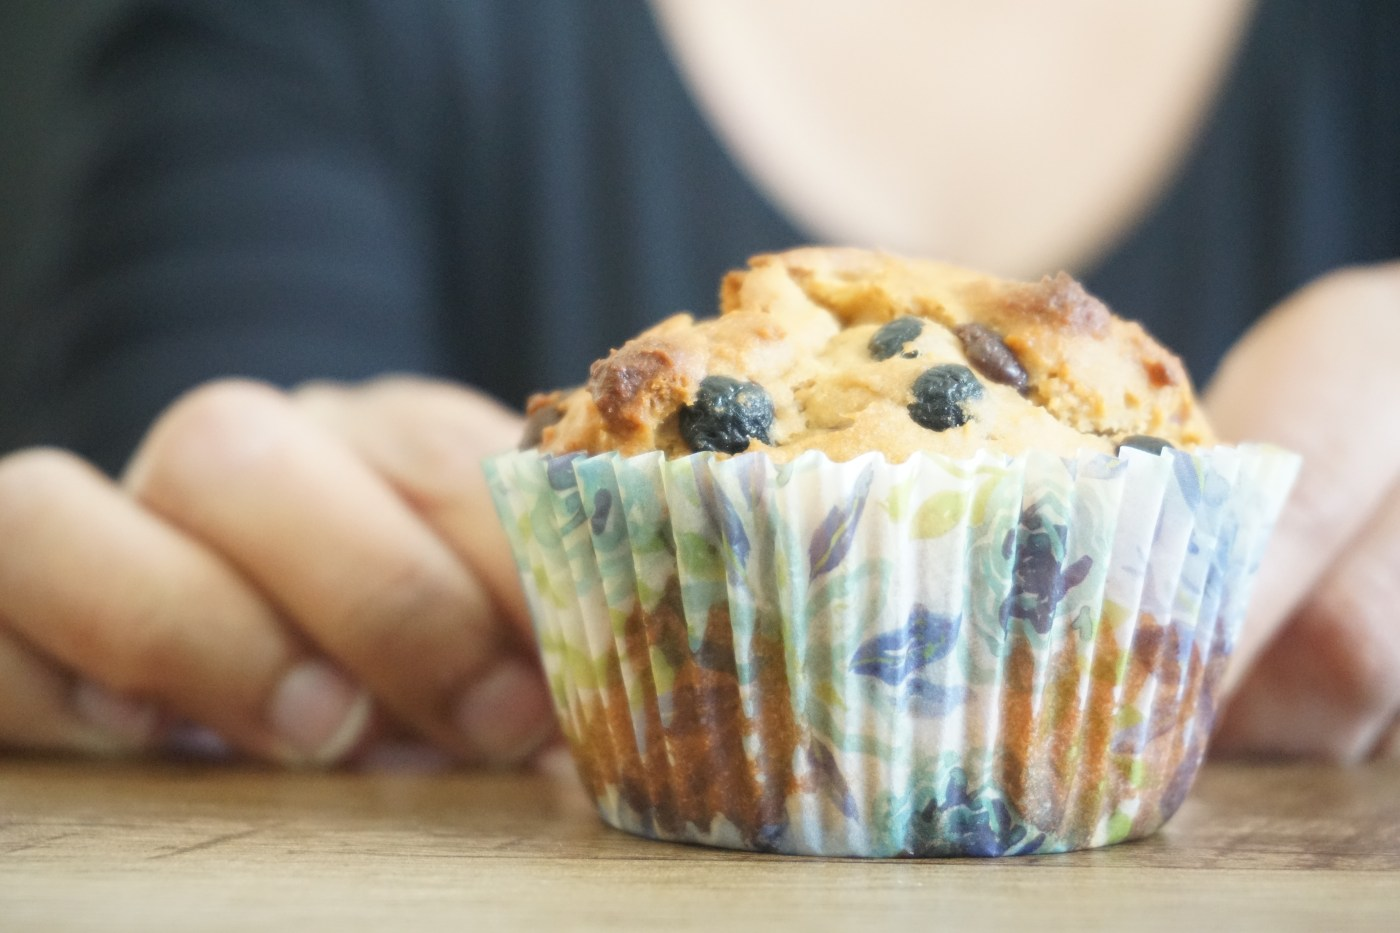 hands holding muffin with liner